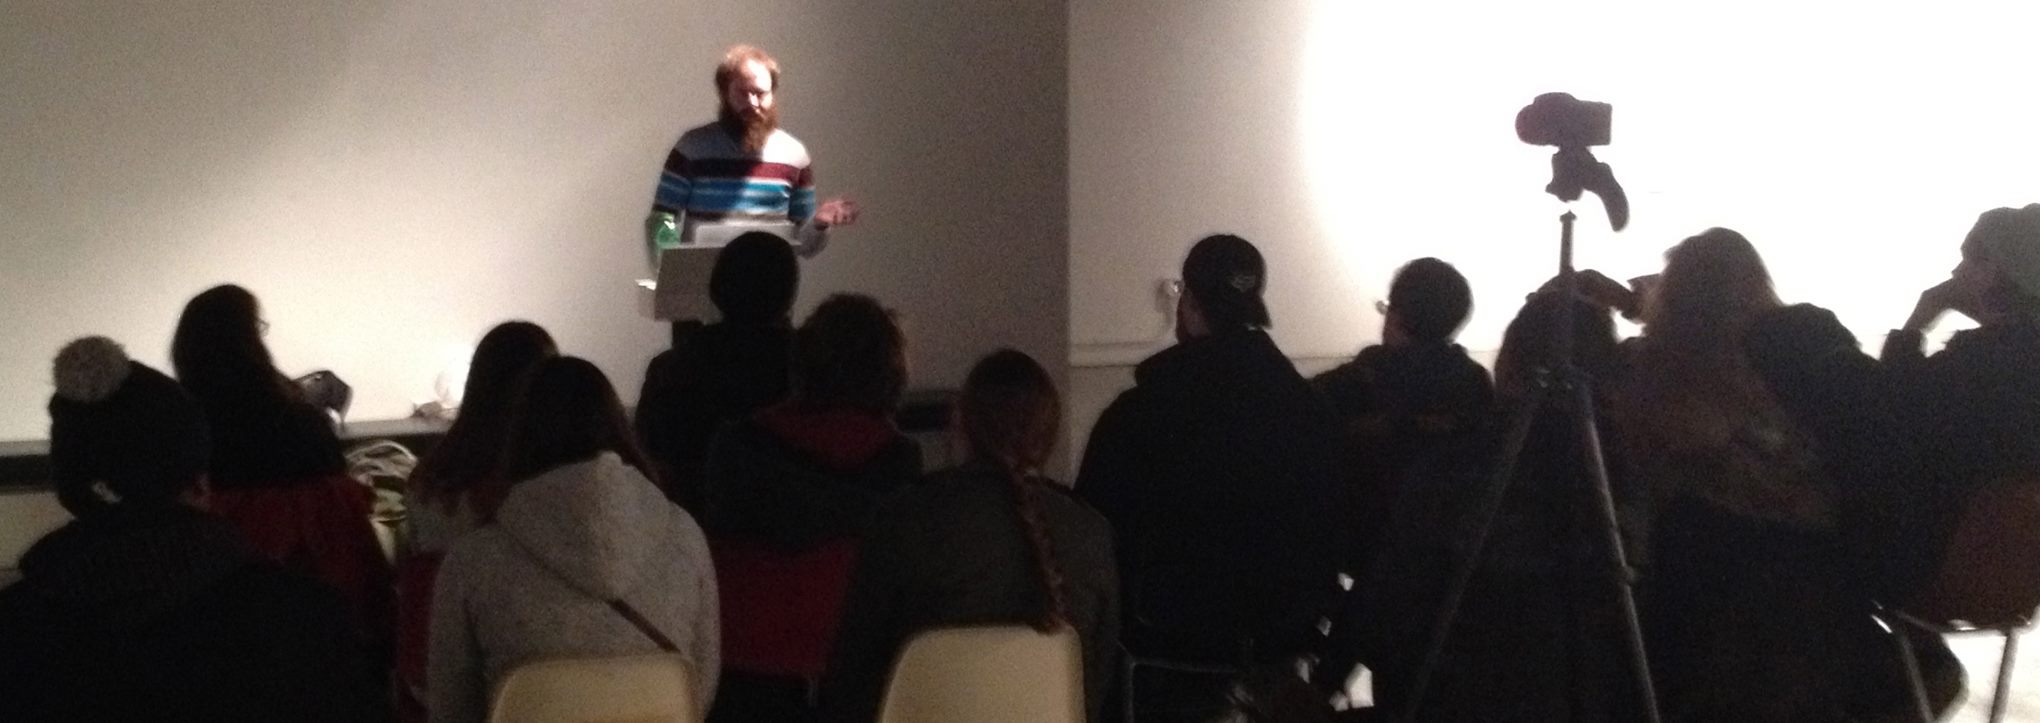 """Craig E. Ross at the """"Art and Revolution"""" discussion during the Didactic Art Show (Surplus Gallery, Carbondale, 2014)"""